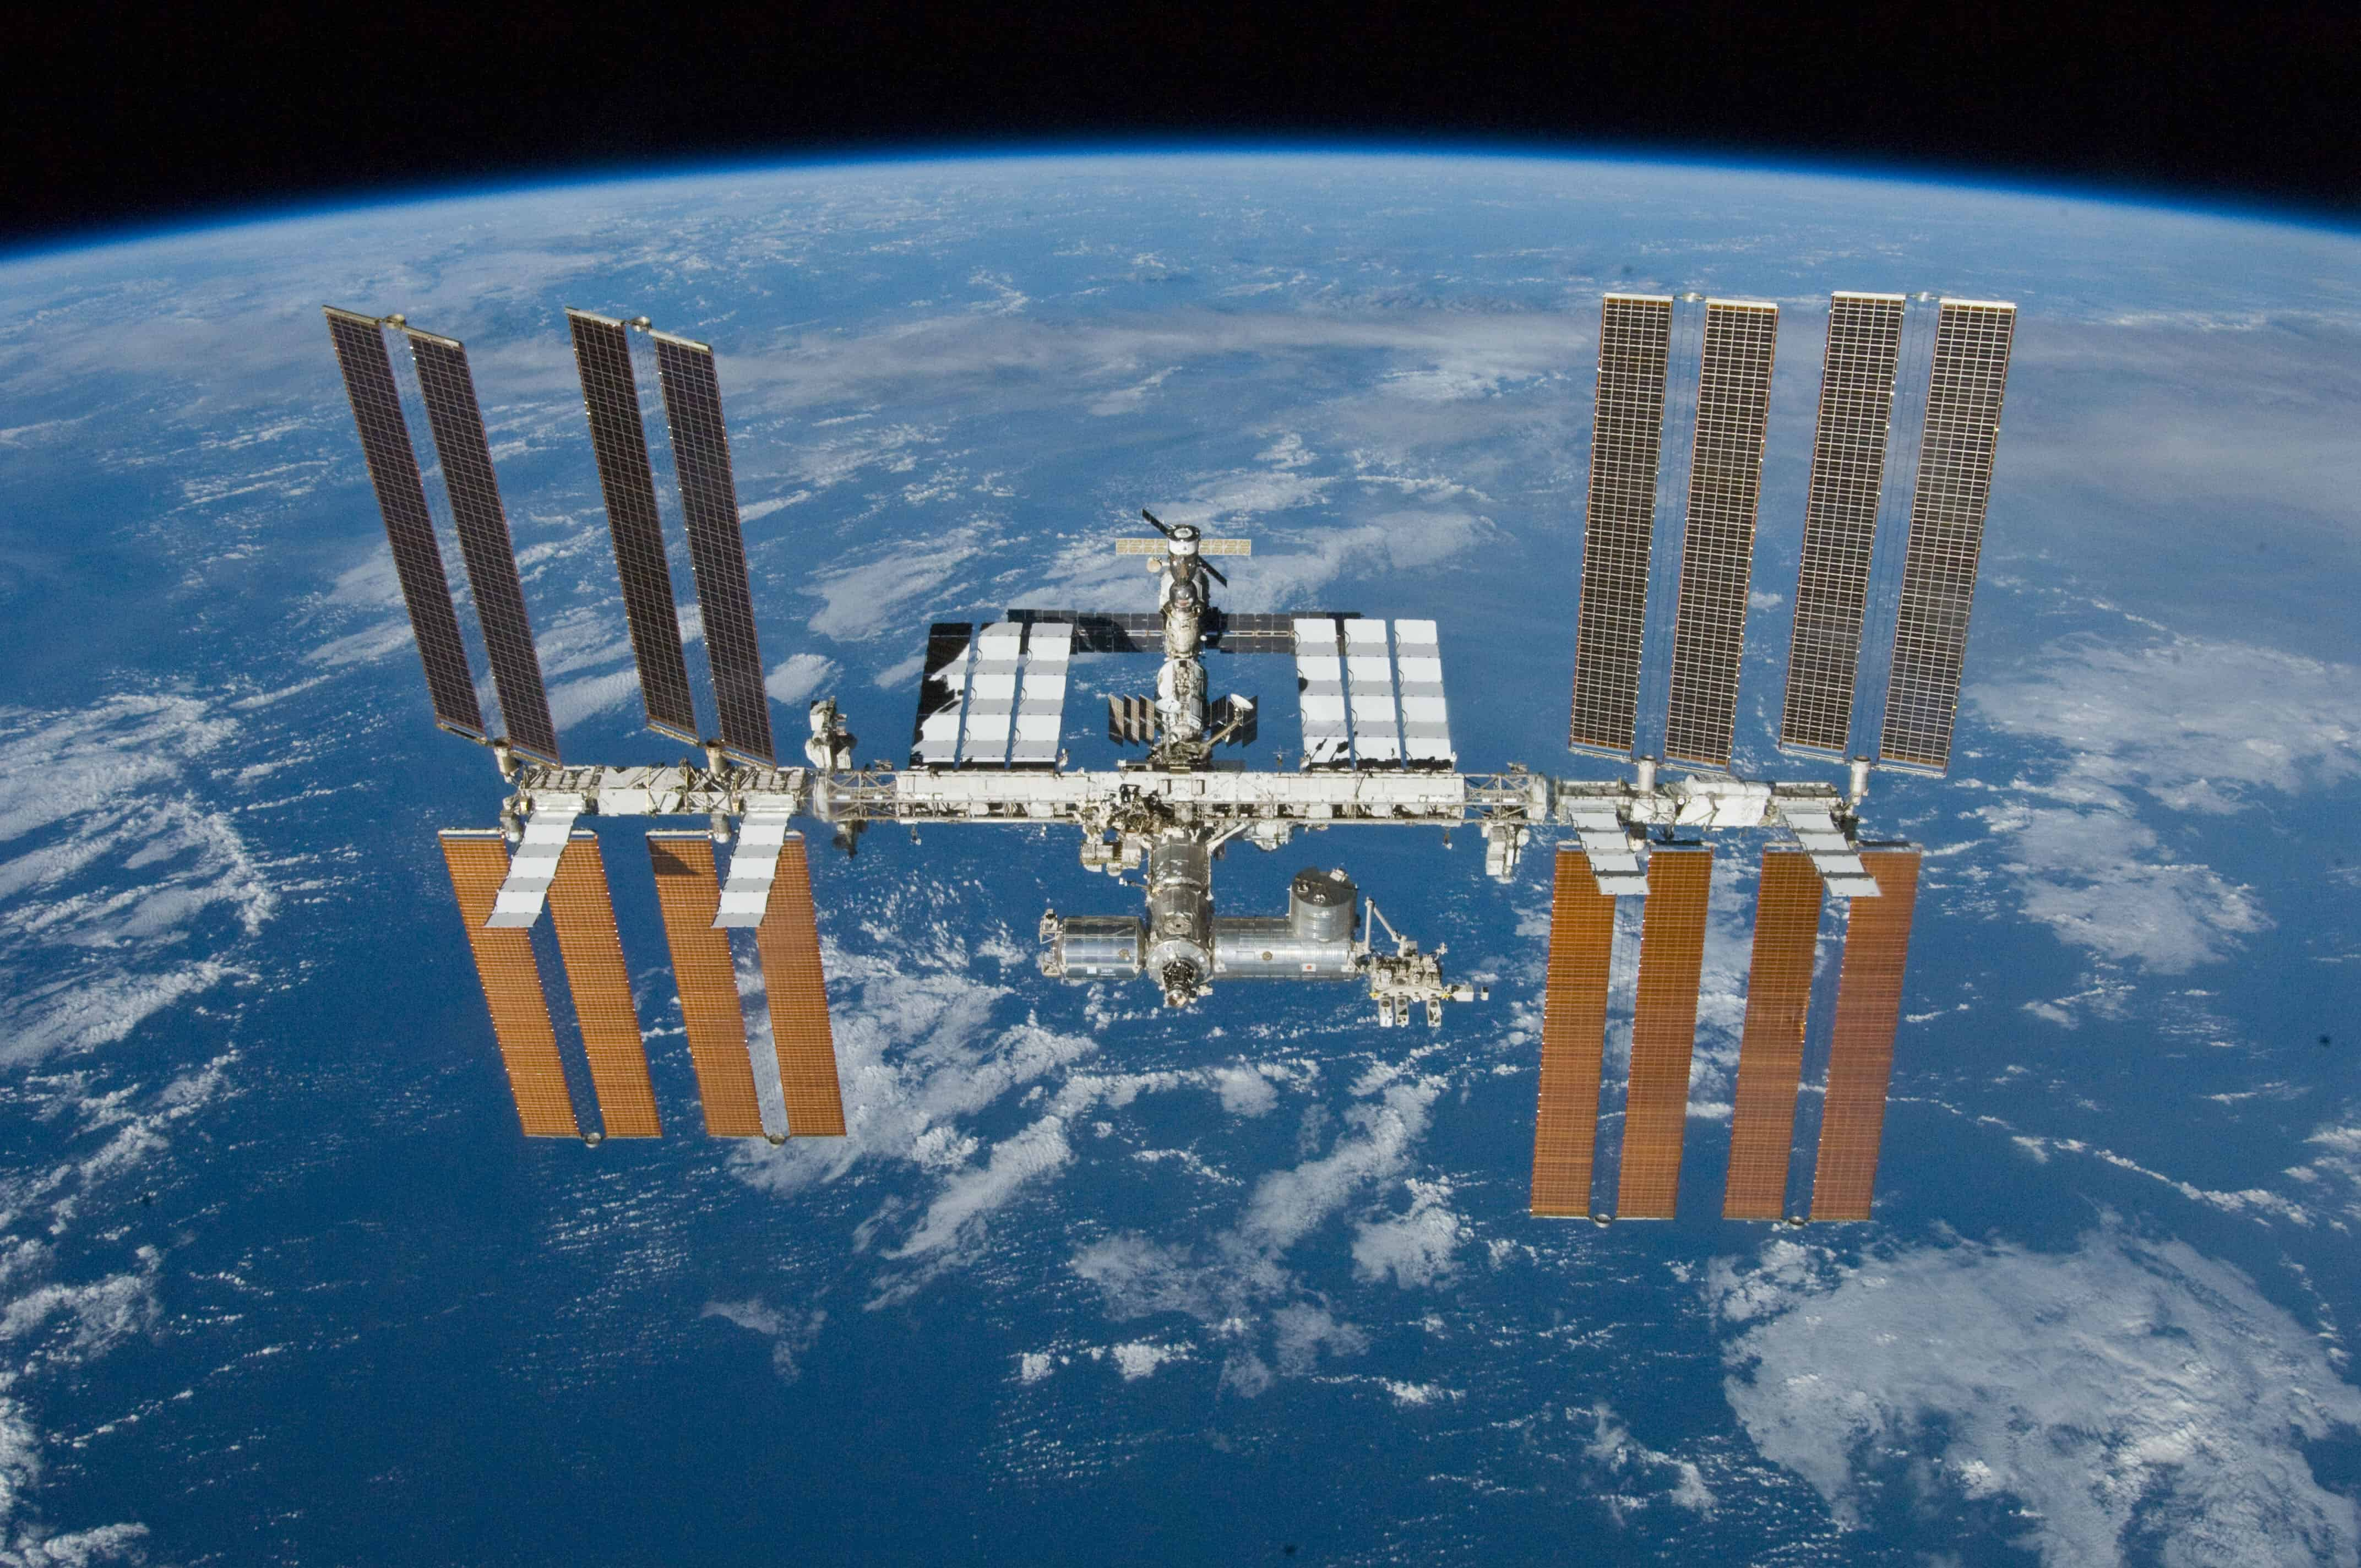 The technology was developed to monitor the crew of the ISS